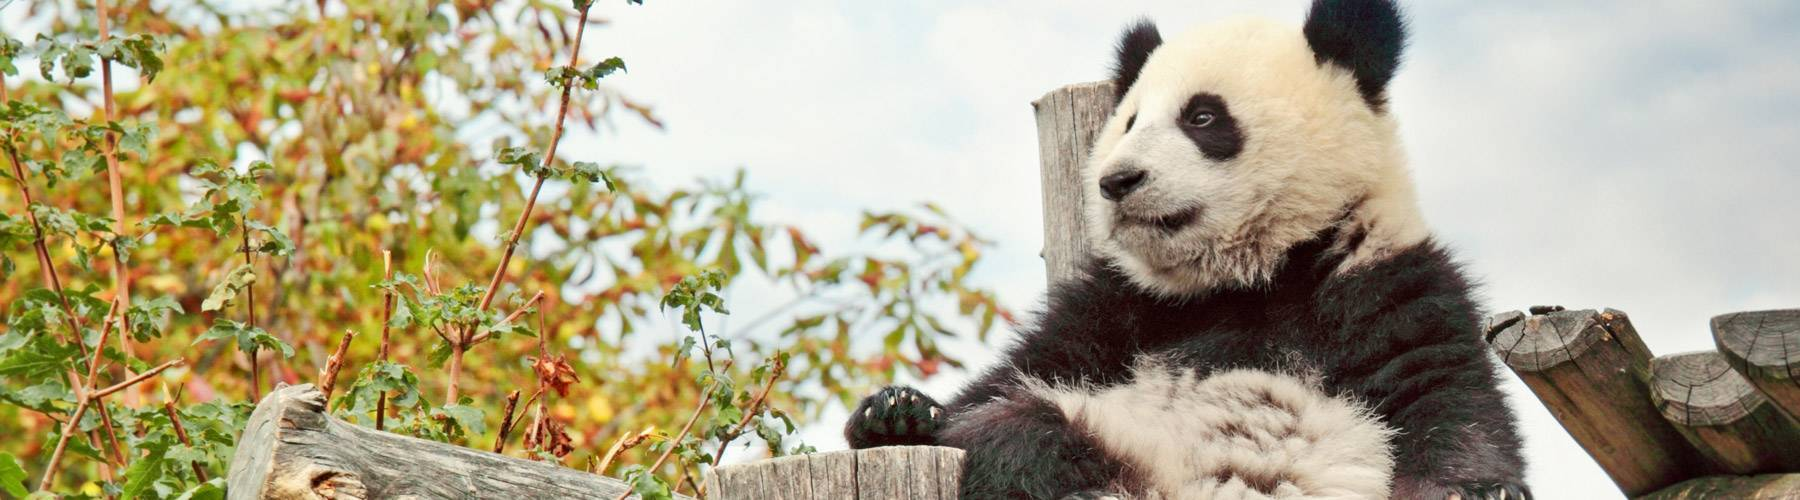 Know More about Giant Panda